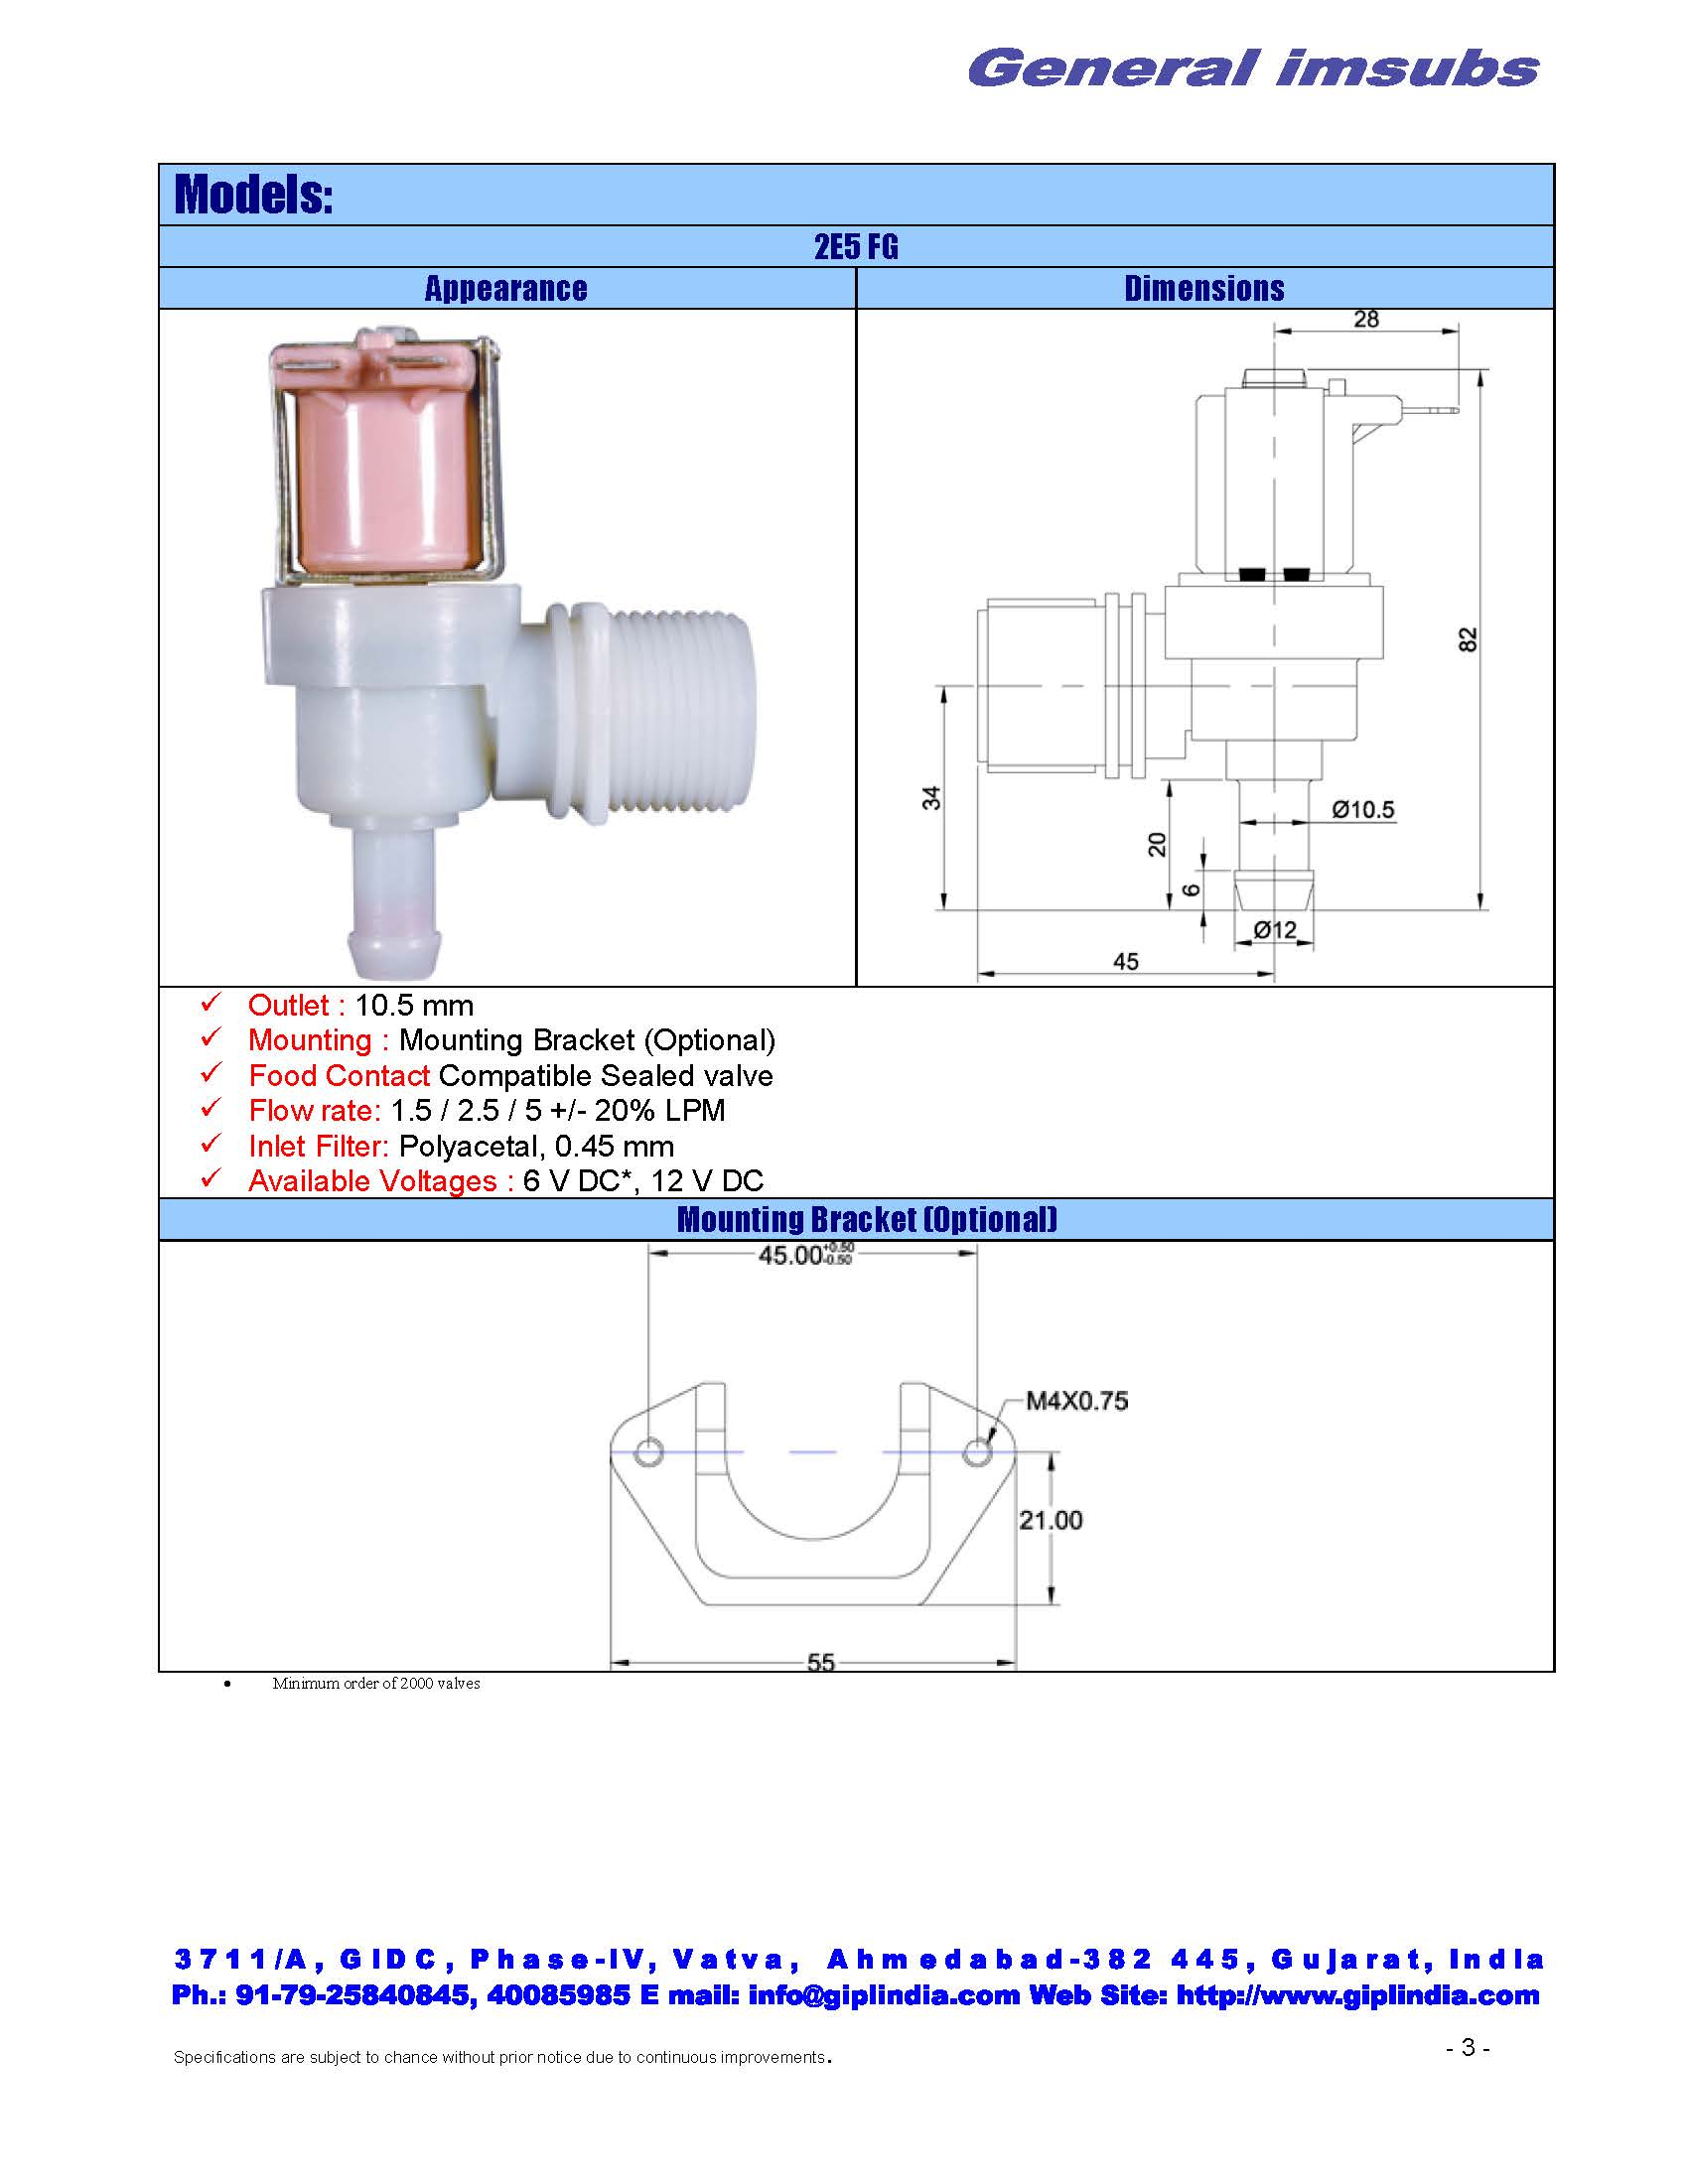 solenoid valve for aqua guard